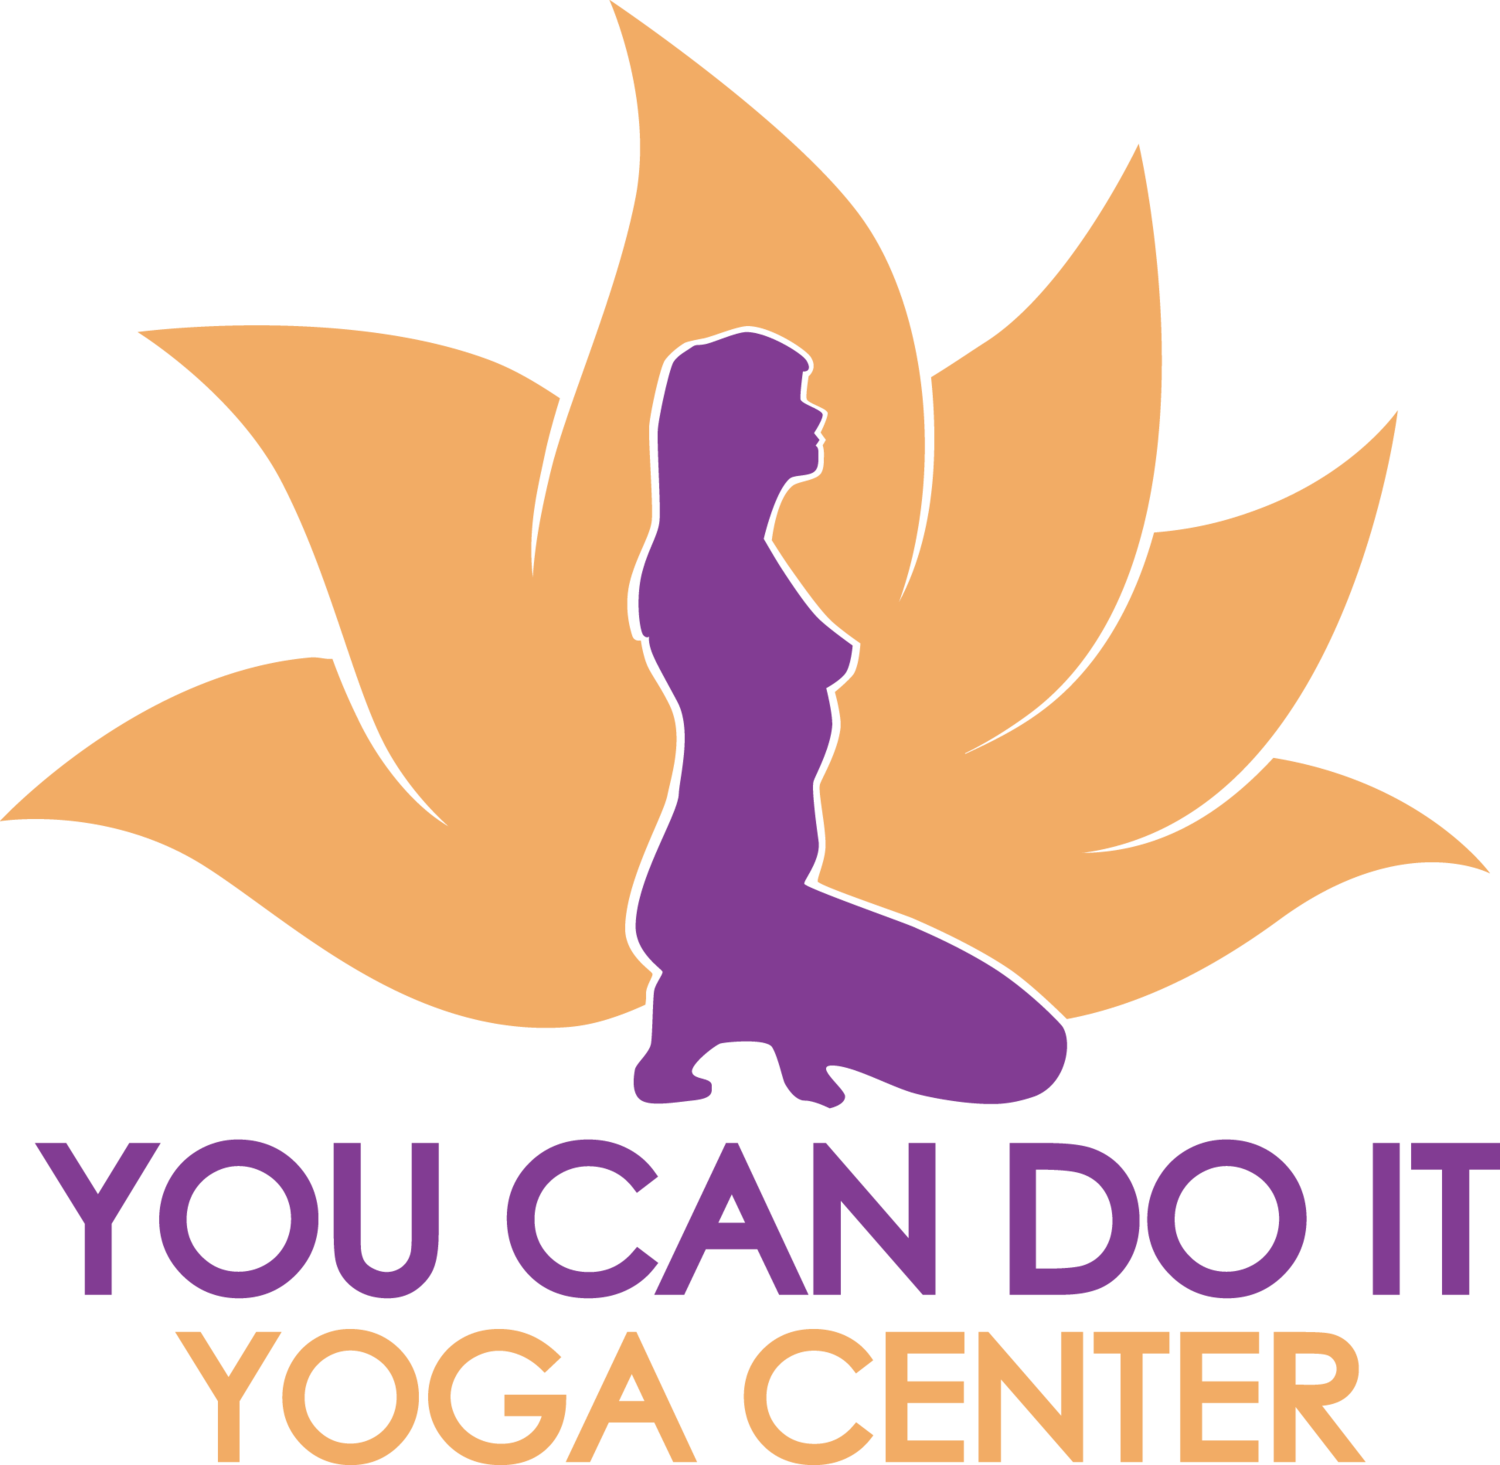 You Can Do It Yoga Center